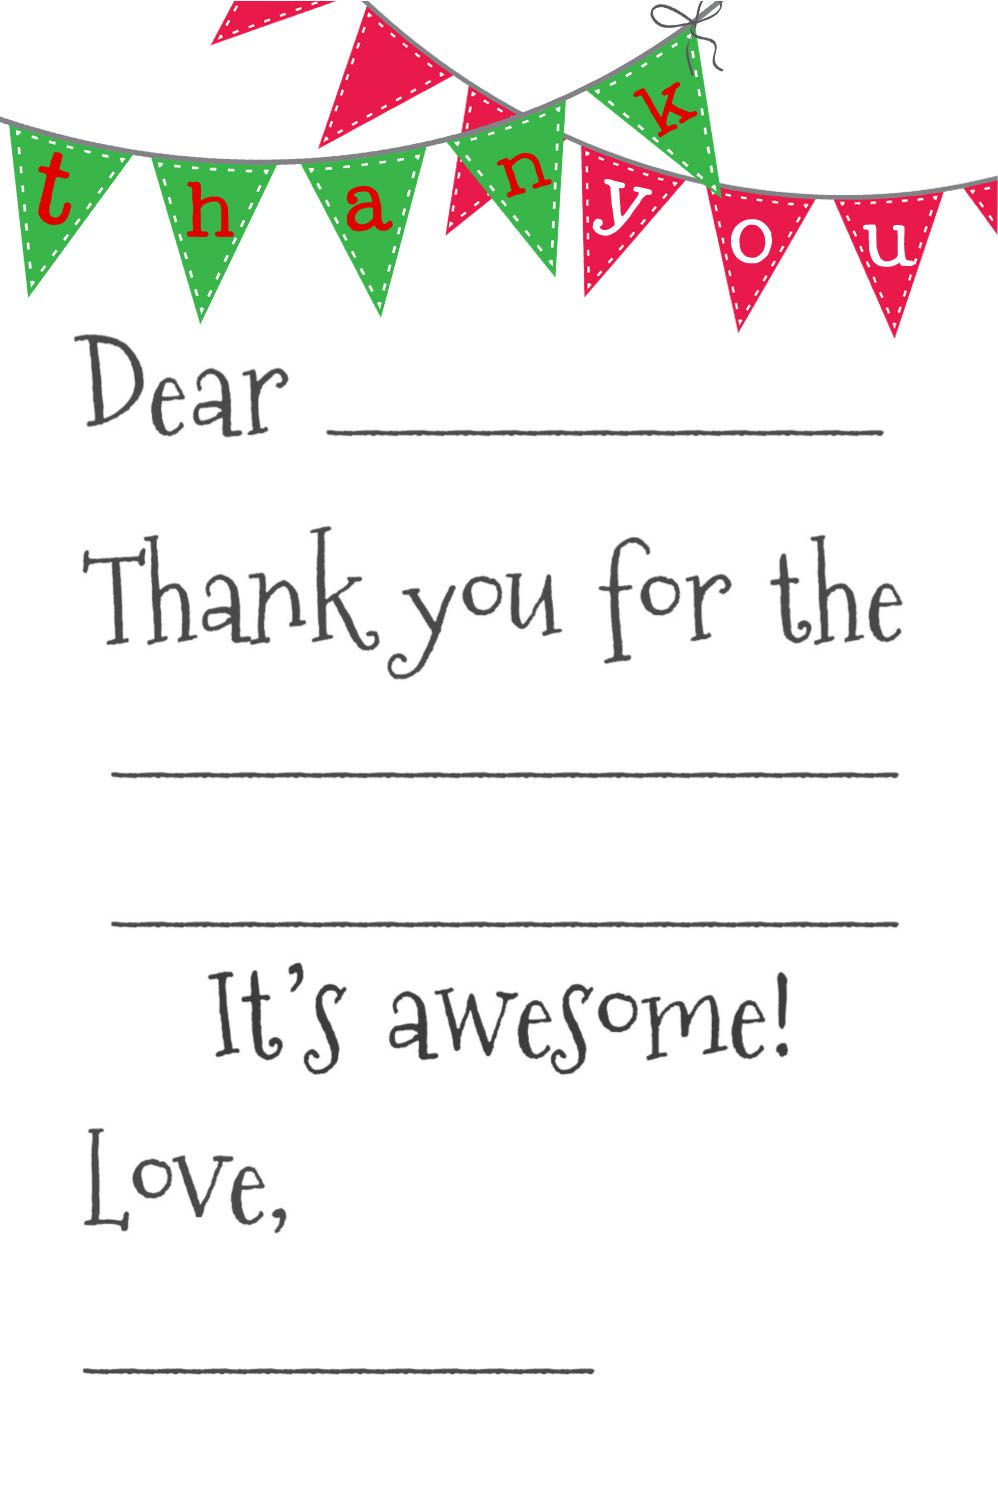 Free Fill-In-The-Blank Thank-You Cards | Printables | Pinterest - Fill In The Blank Thank You Cards Printable Free